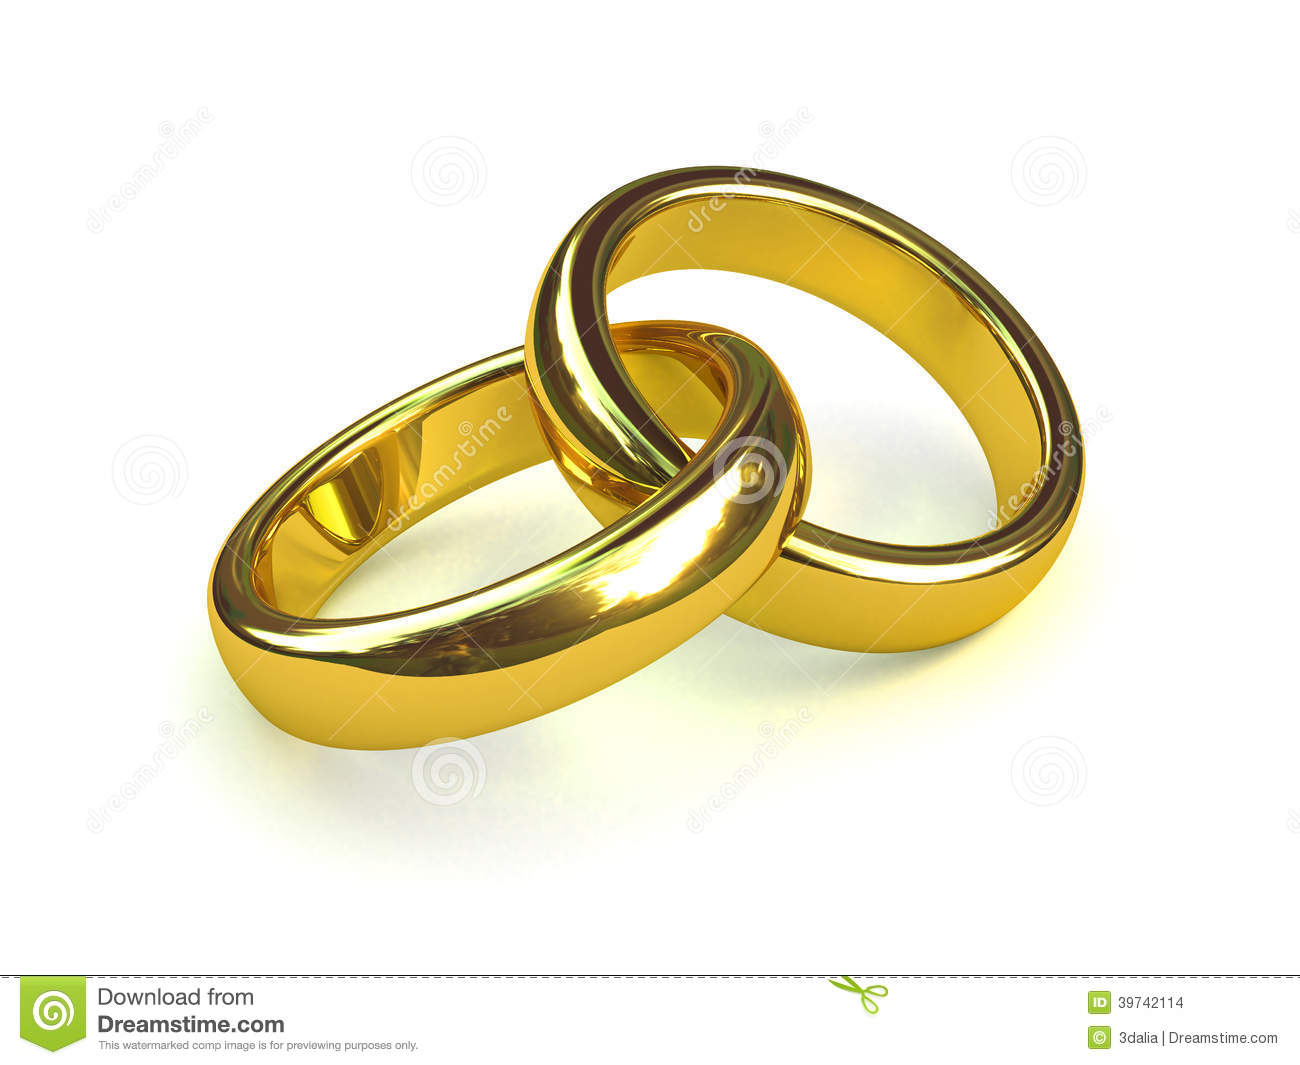 interlocking wedding rings clipart - photo #43